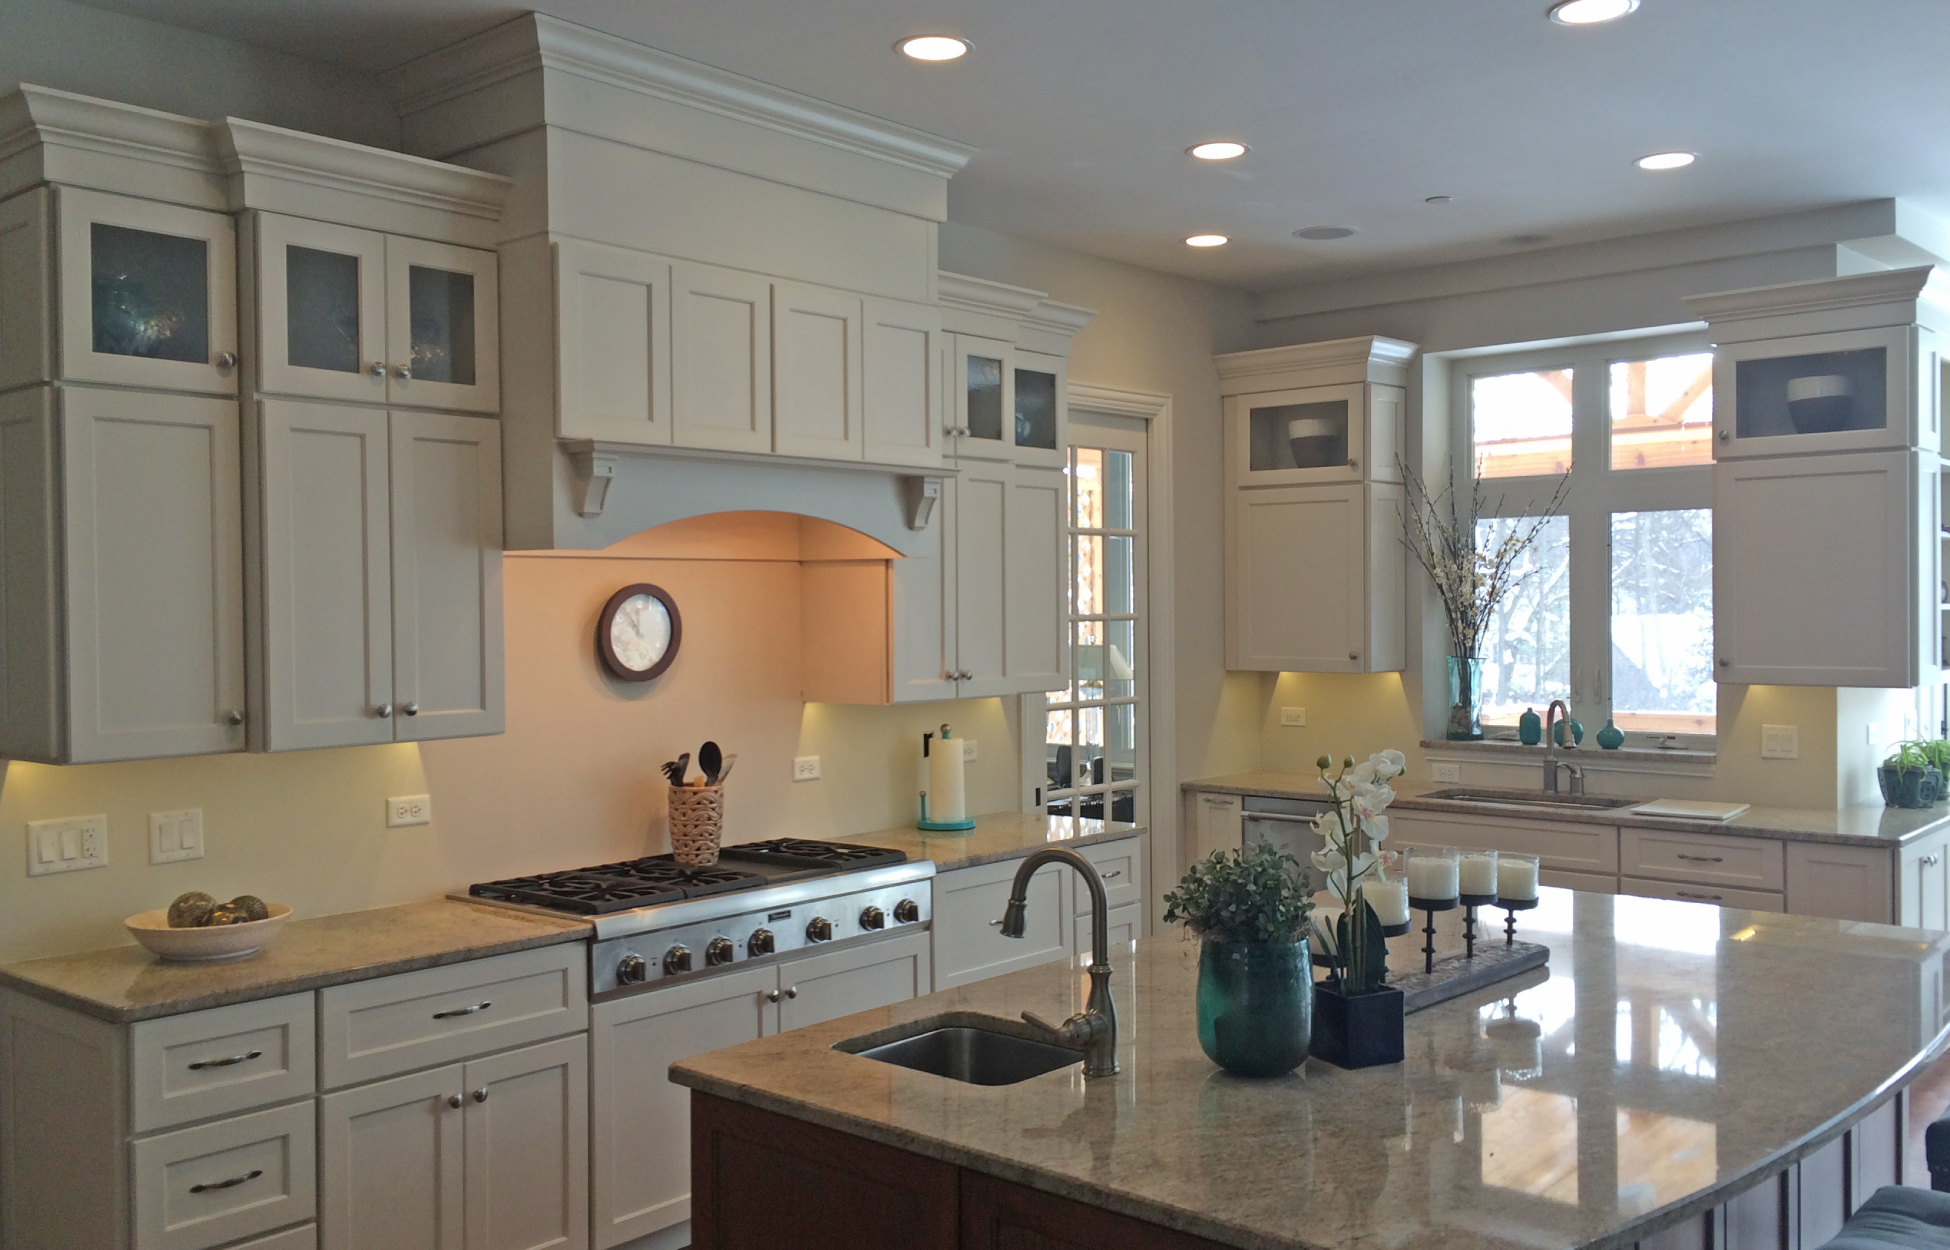 Kitchen Design Store Knoxville Tn Heritage Home Decor Design Kitchen And Bathroom Remodeling